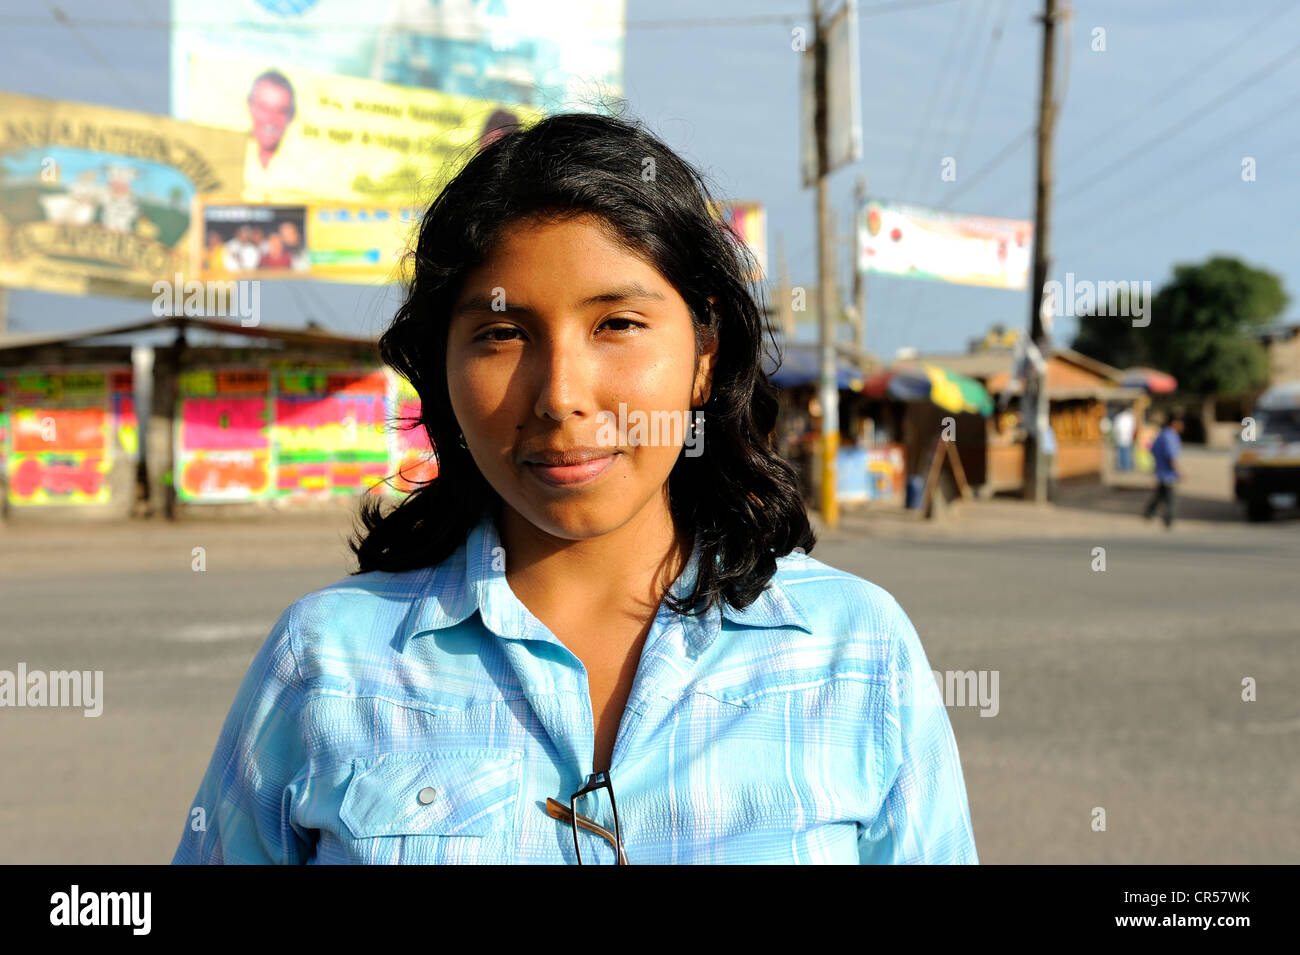 Portrait of a young woman with indigenous features, Pachacamac, Lima, Peru, South America - Stock Image